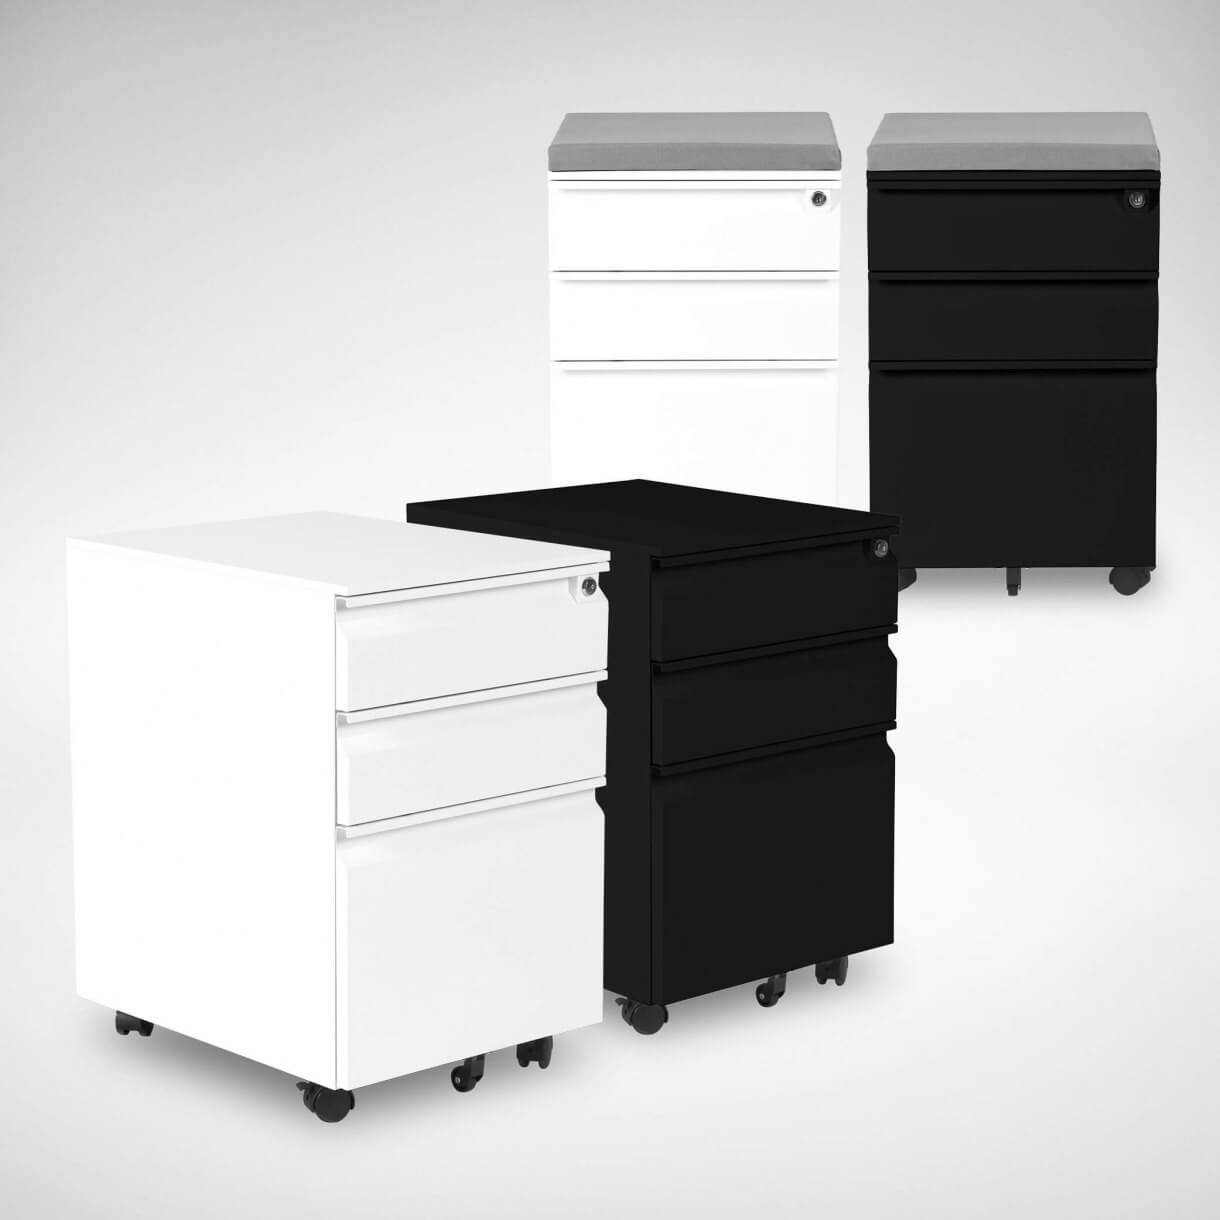 Work From Home with Mobile Pedestal Drawers For Added Storage - Comfort Furniture